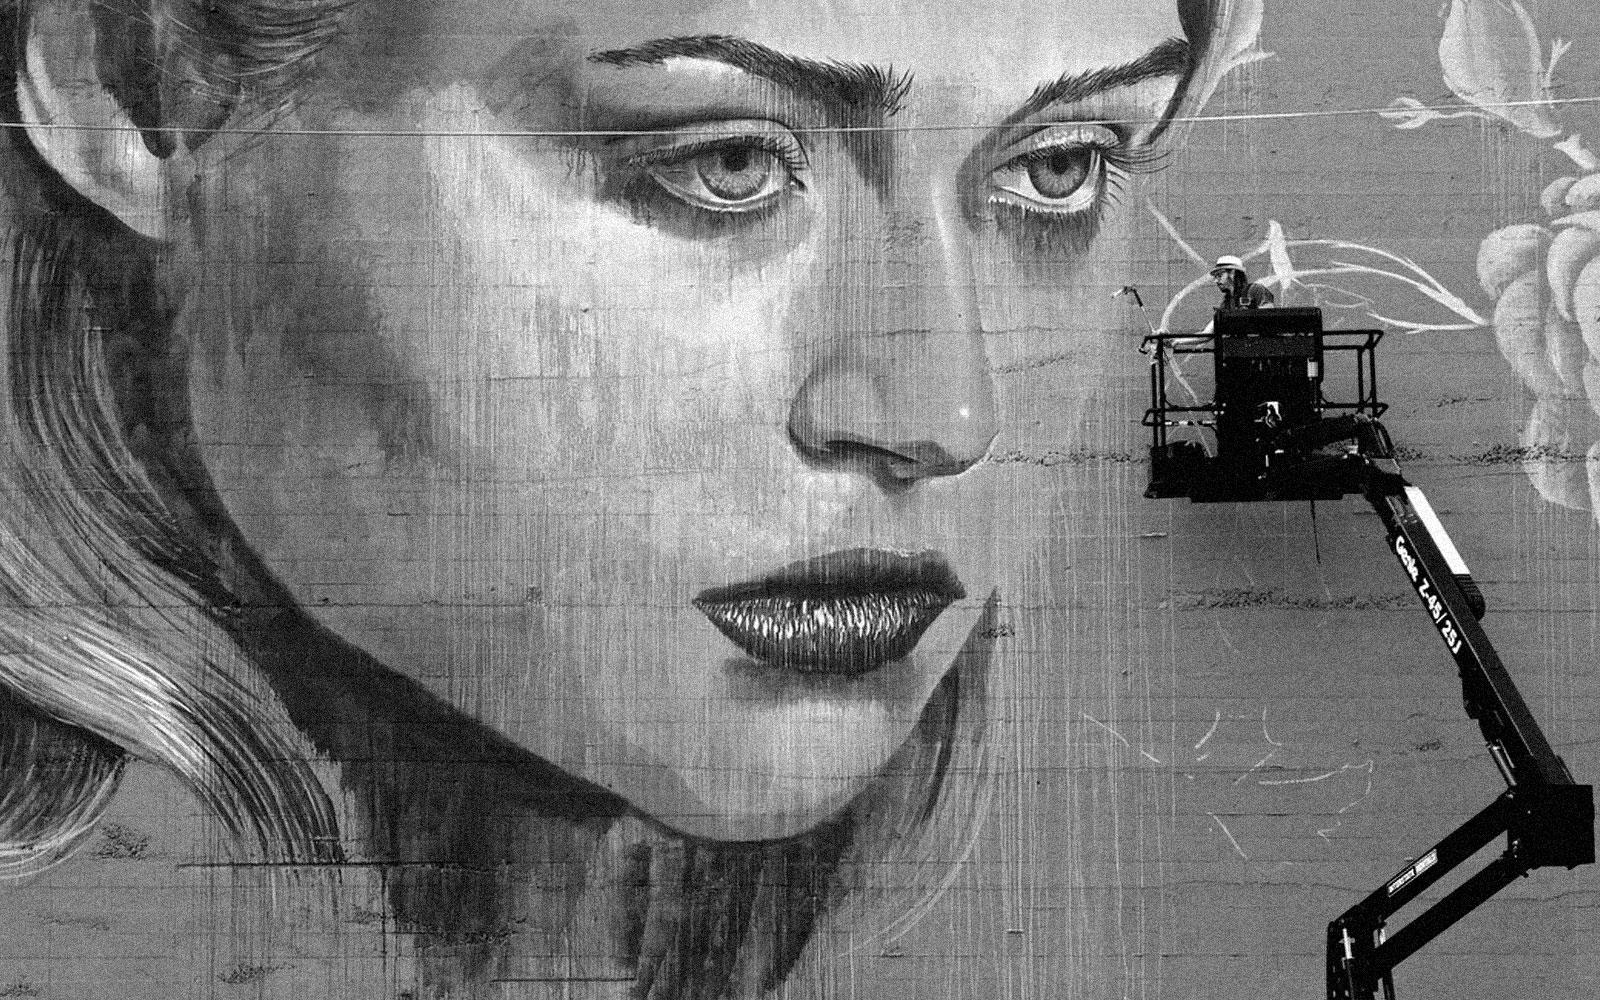 2013 Mural progress by Rone courtesy of Forest for the Trees